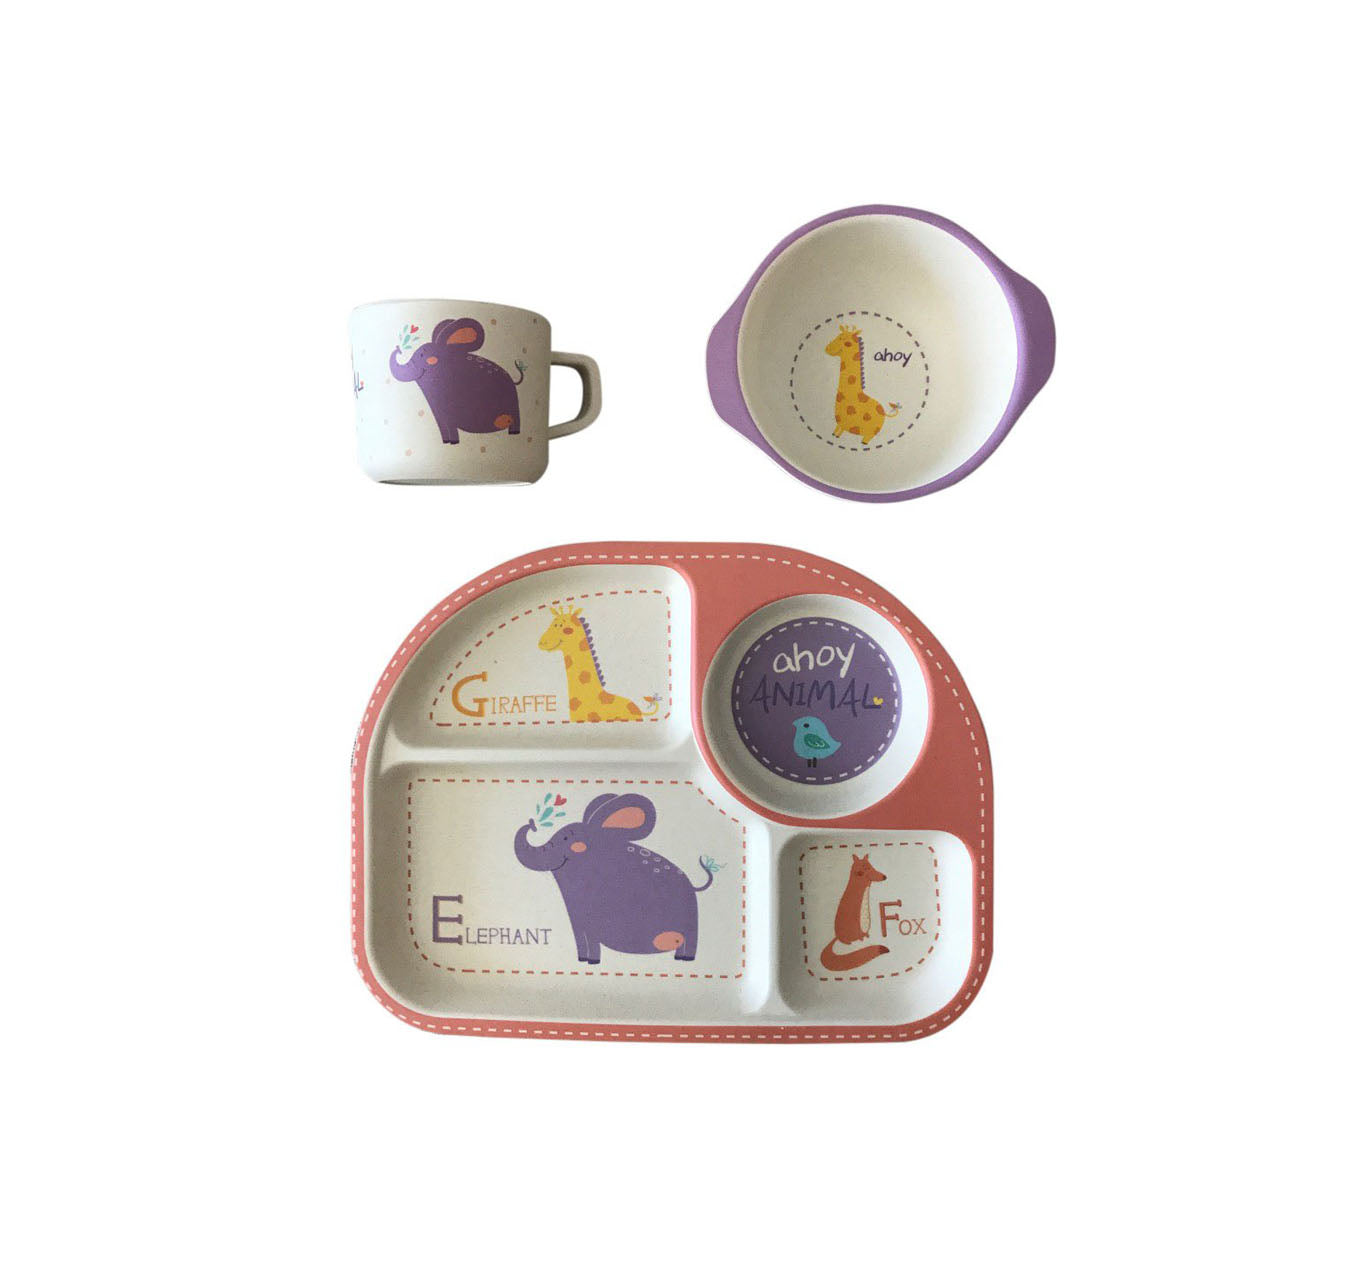 AHOY ANIMAL BAMBOO FIBER KIDS SET